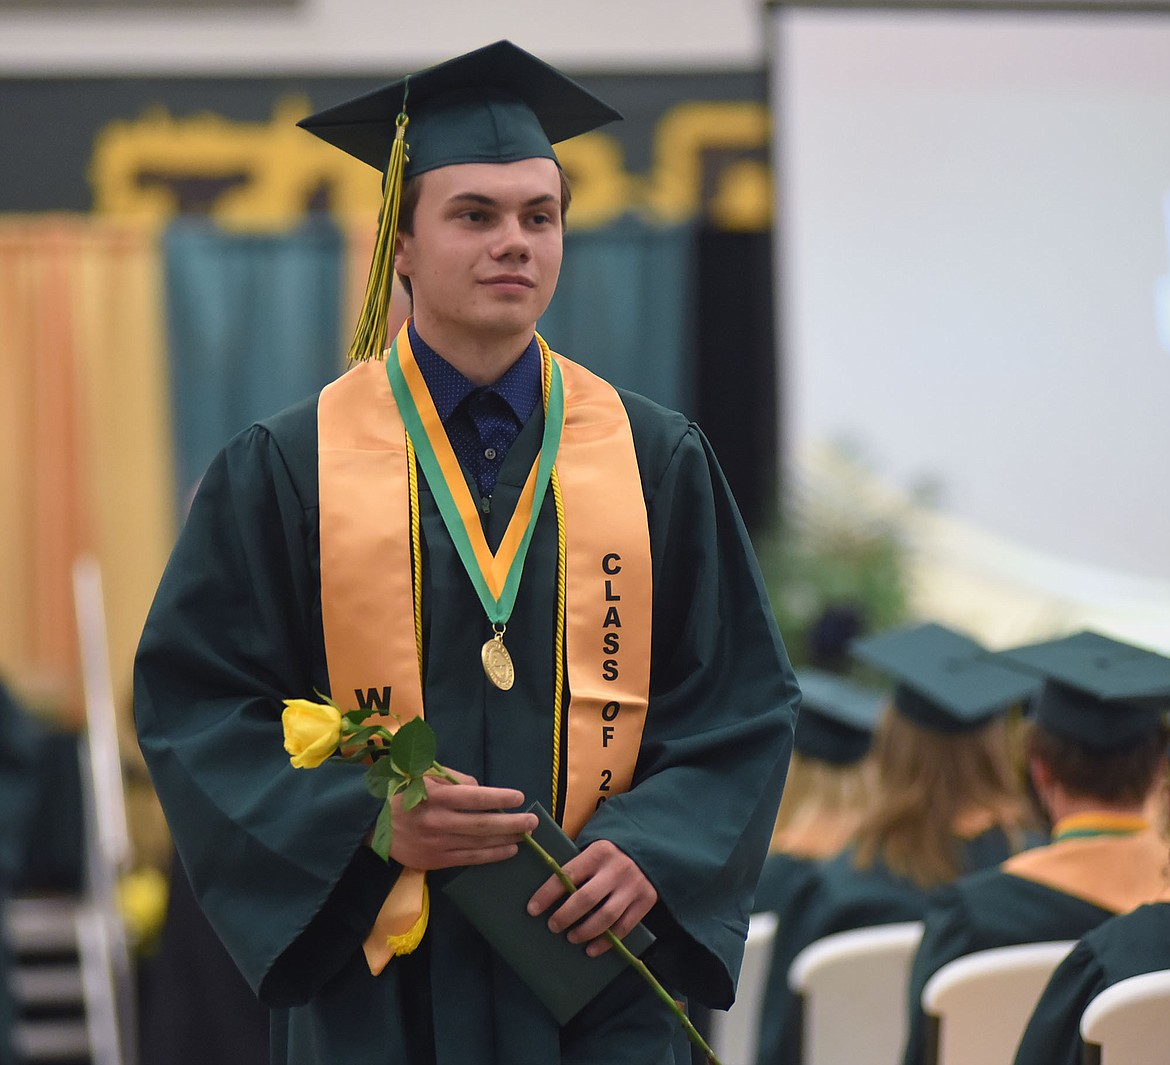 Whitefish High School graduated 138 seniors with the Class of 2021 Saturday during a commencement ceremony at the high school gym. (Heidi Desch/Whitefish Pilot)